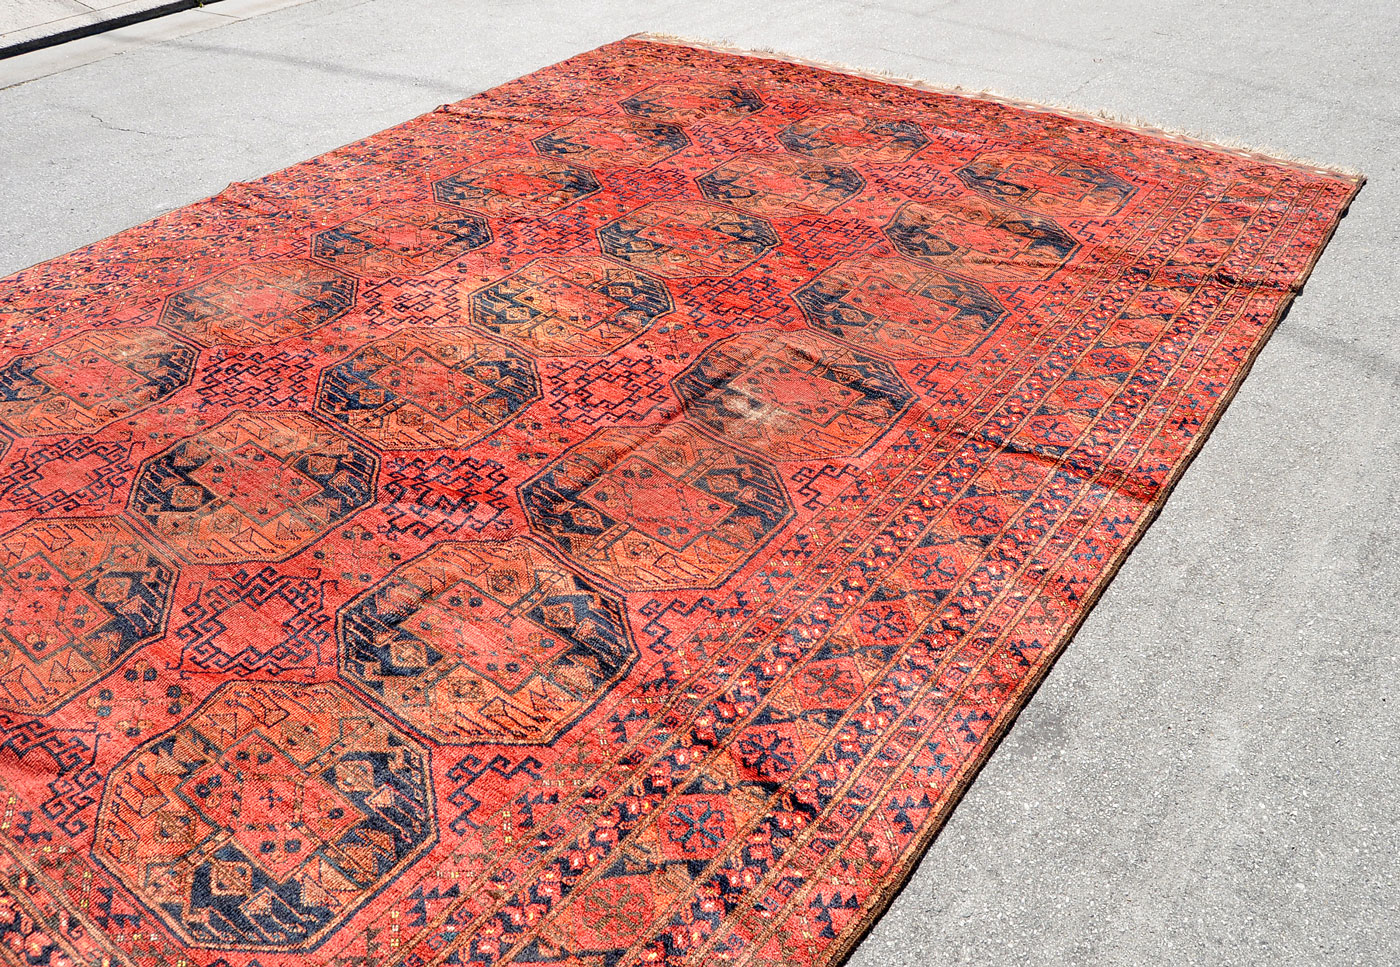 Turkoman Antique Rug 13 ft. by 10 ft.